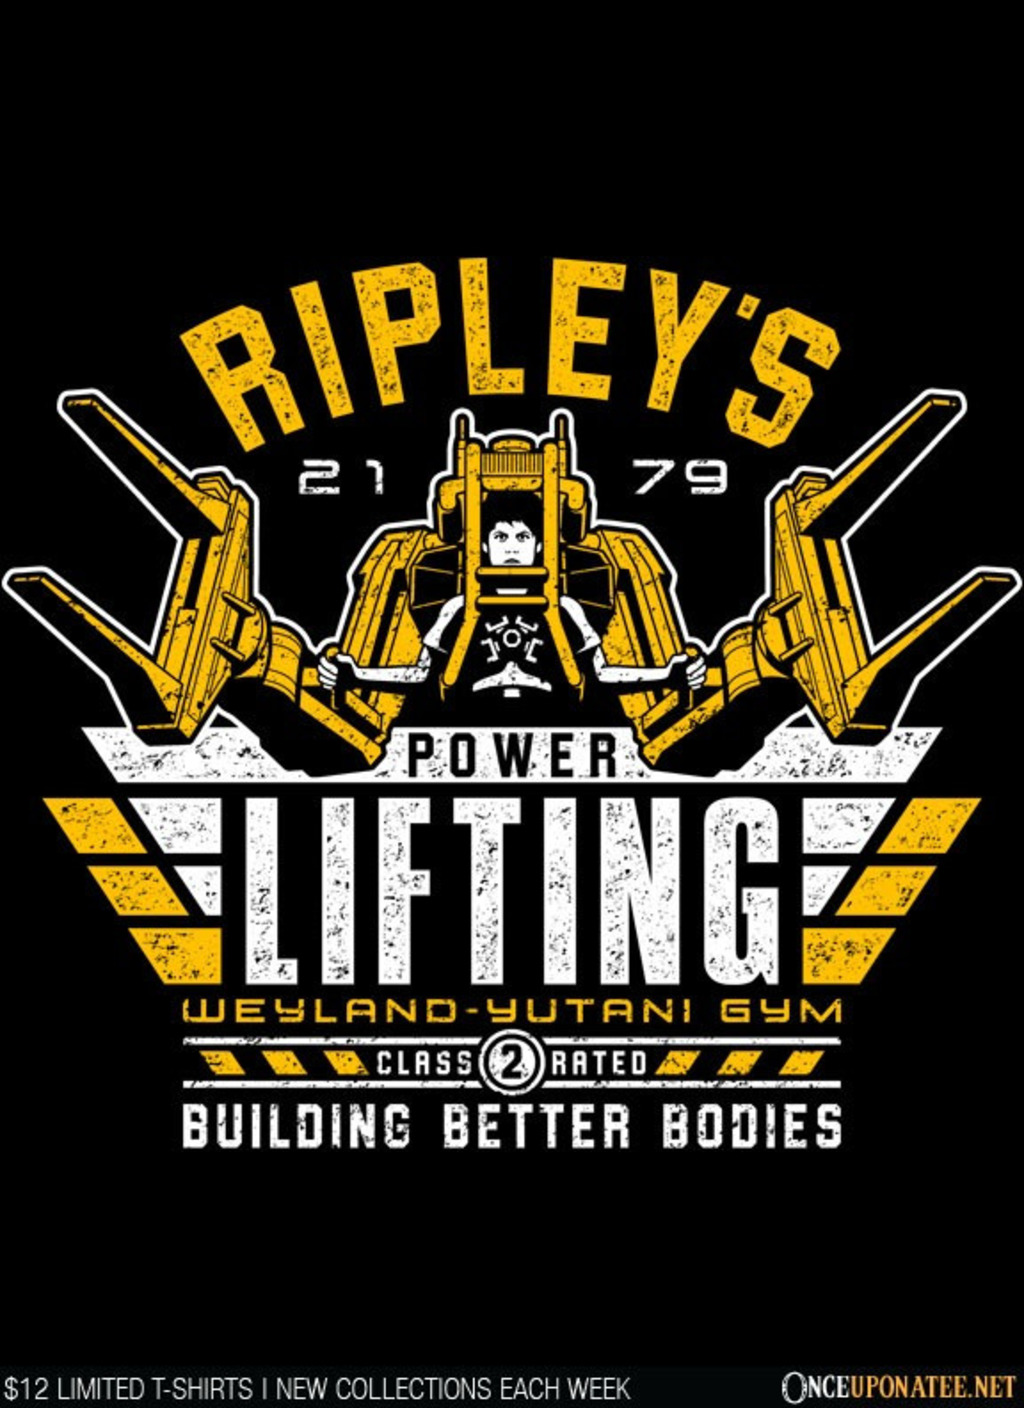 Once Upon a Tee: Building Better Bodies